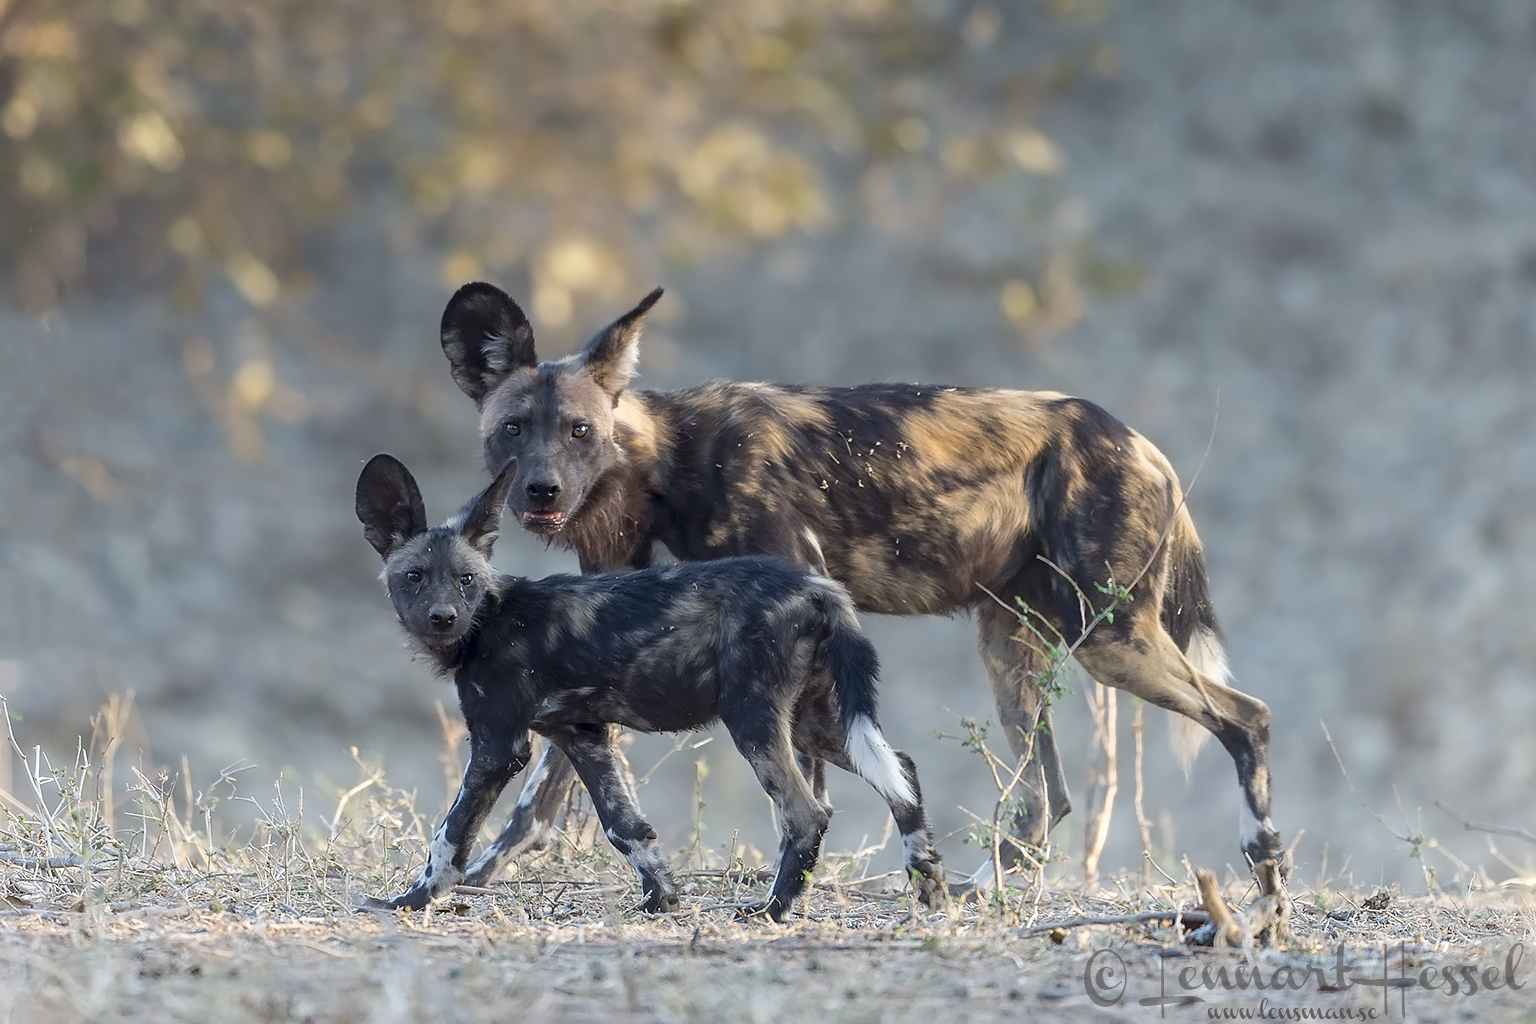 Painted Dog pup and adult Mana Pools National Park